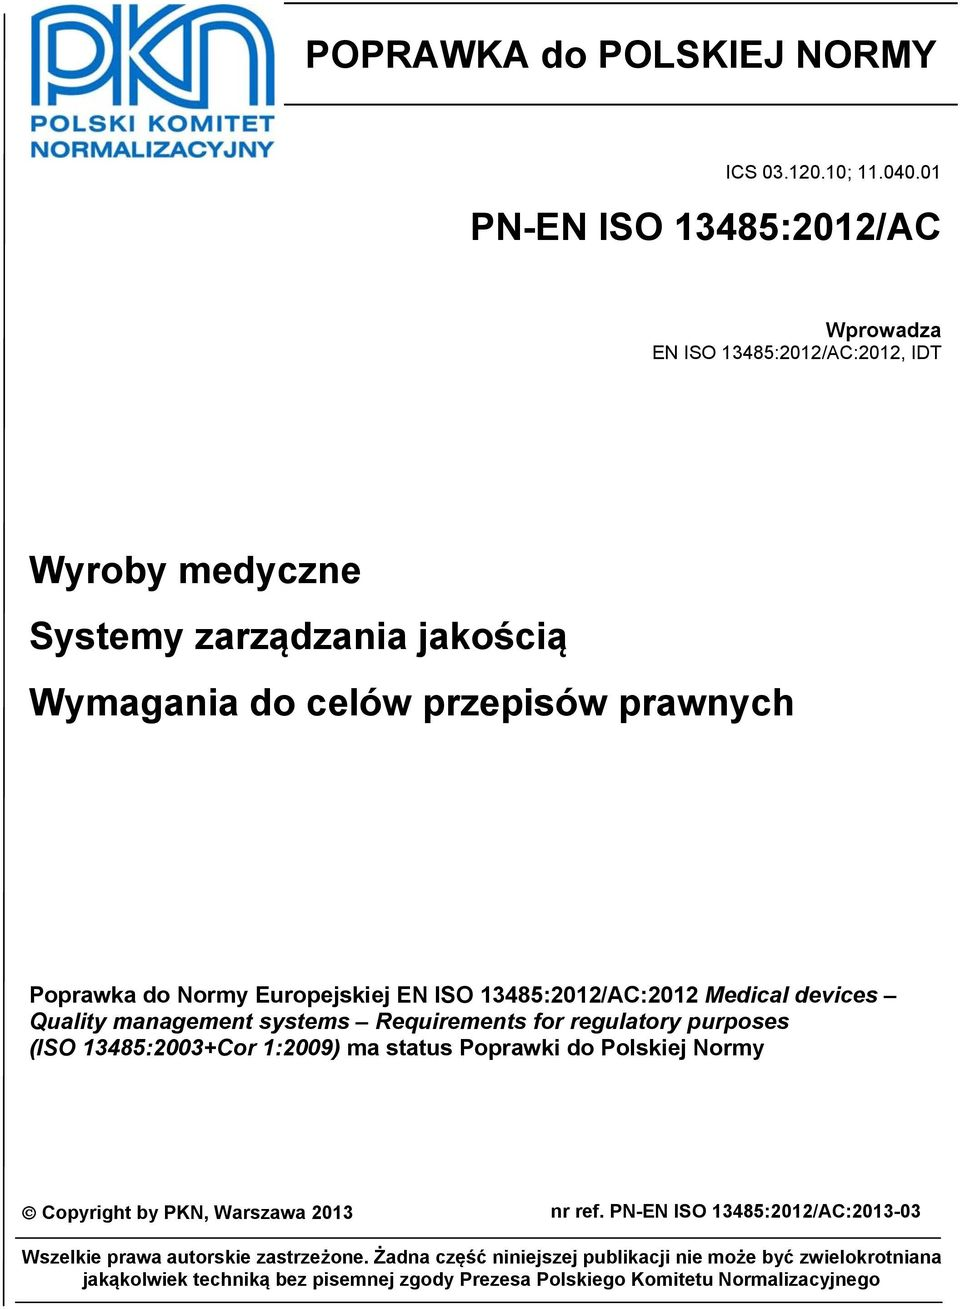 Normy Europejskiej EN ISO 13485:2012/AC:2012 Medical devices Quality management systems Requirements for regulatory purposes (ISO 13485:2003+Cor 1:2009) ma status